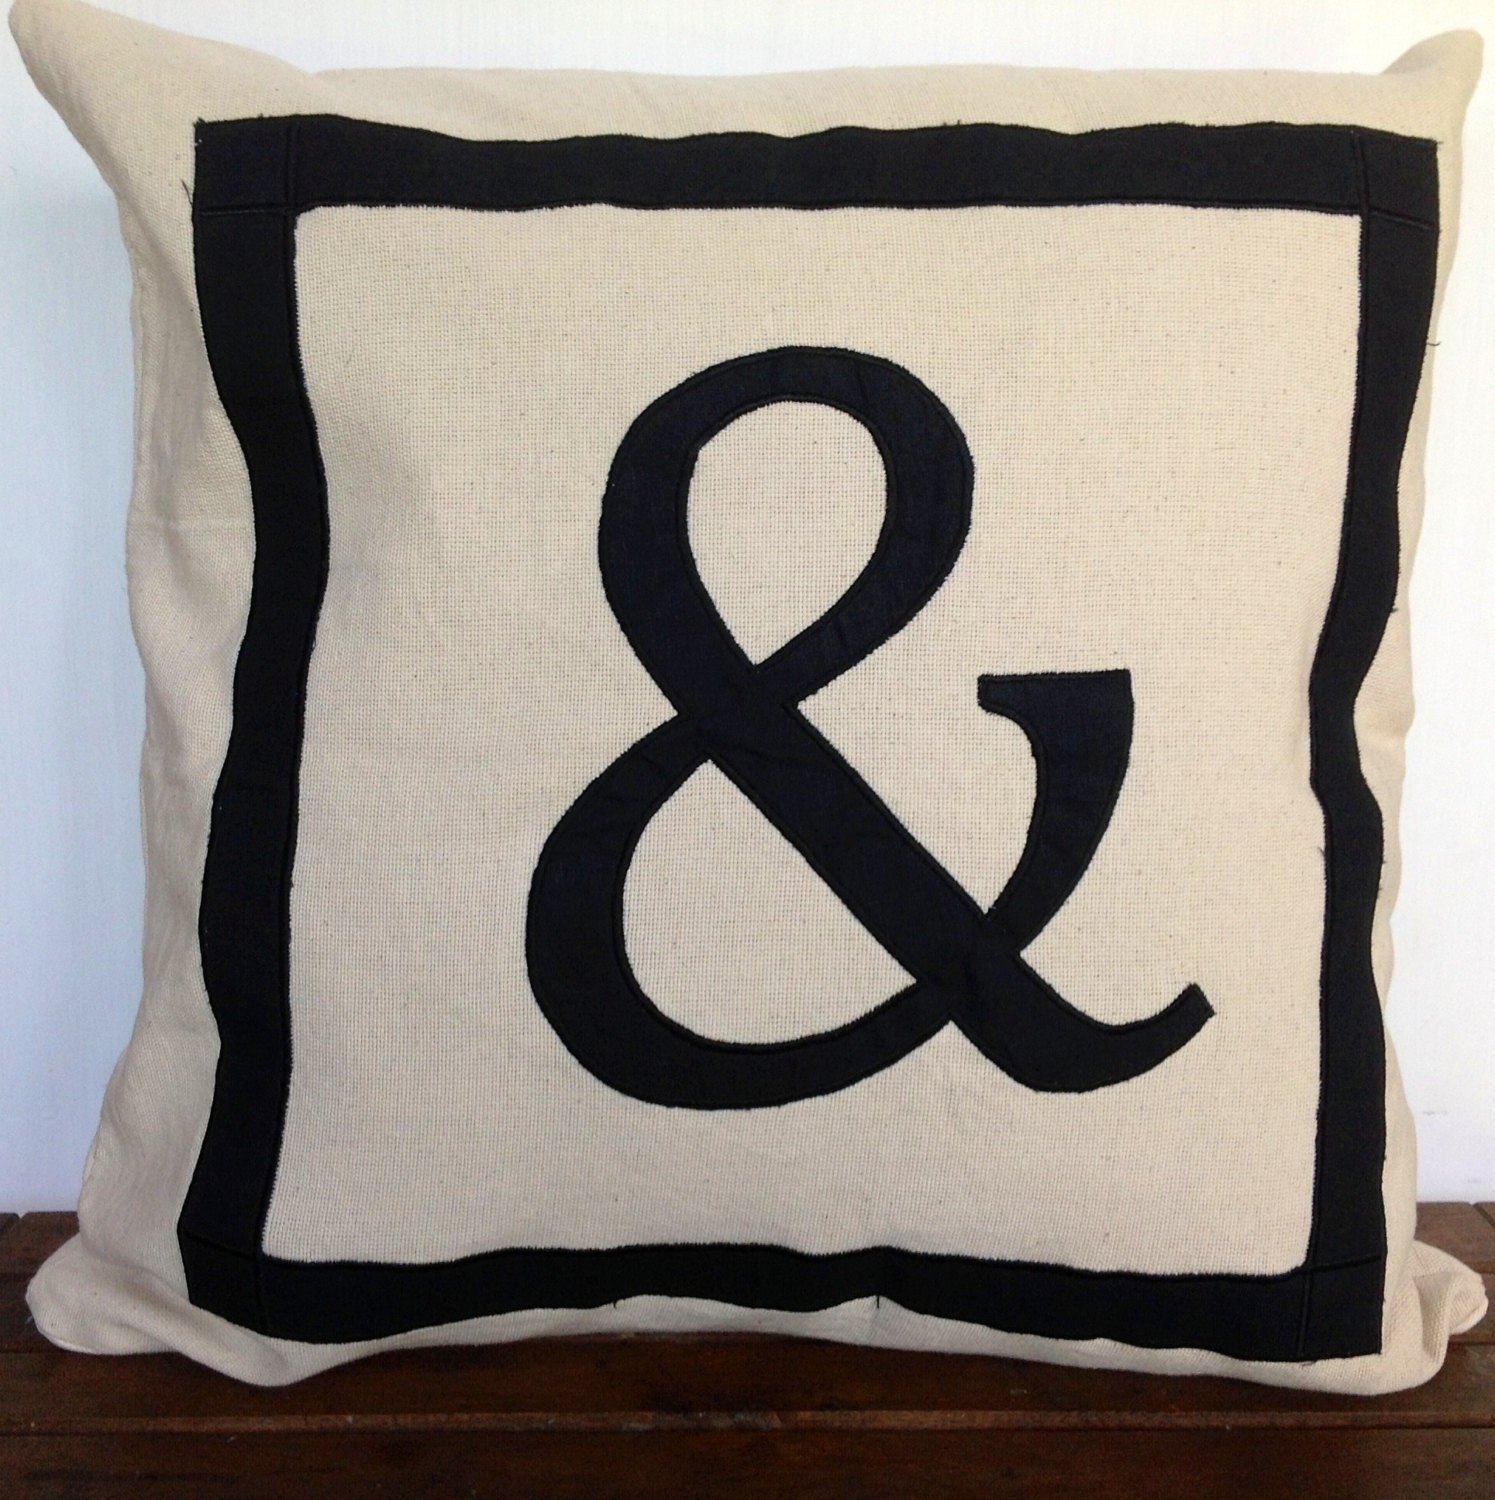 30% OFF Reversible Personalized letter throw pillows-18